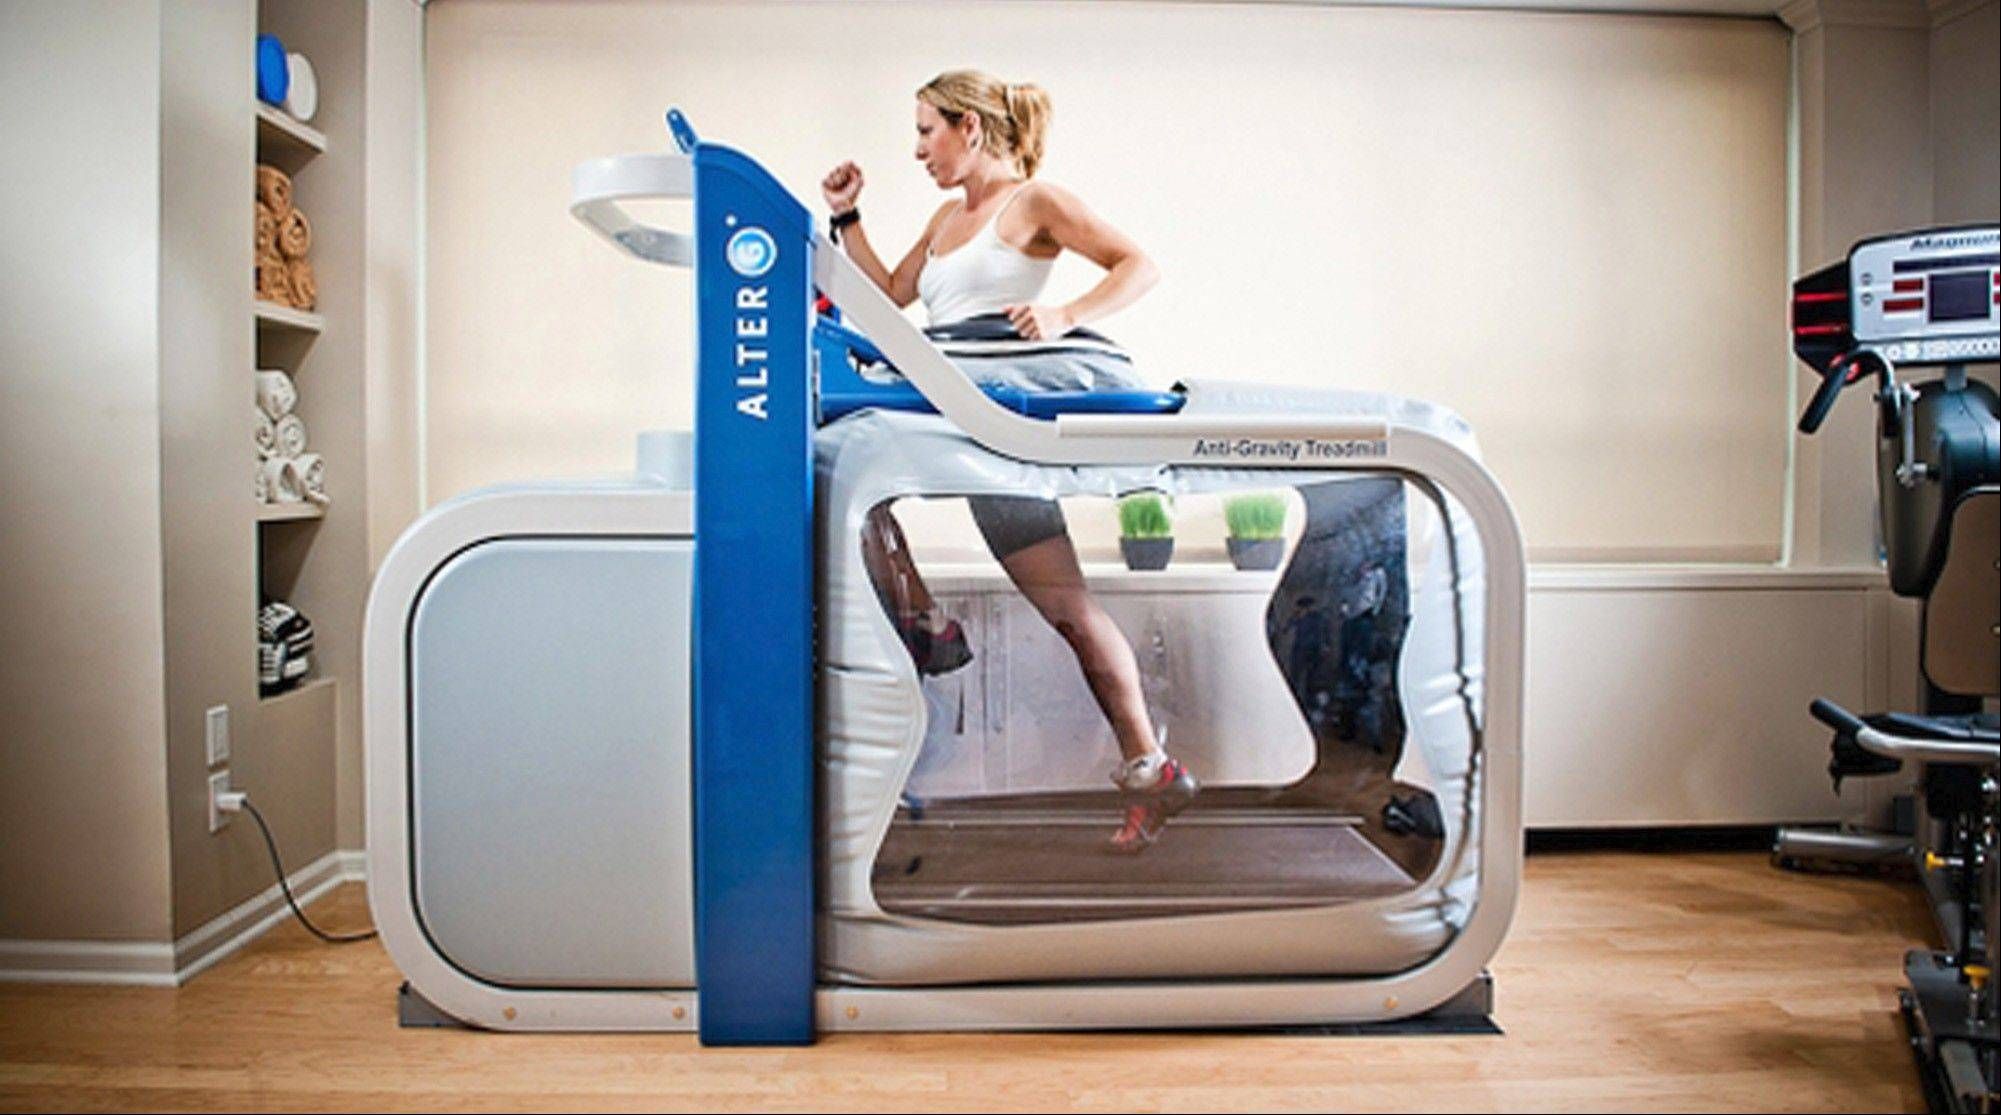 The AlterG treadmill allows athletes to get back to running while preventing gravity from doing further damage to injured limbs. An air bag is strapped around a patient's waist. When inflated, the bag allows the patient to run without putting weight on the legs.